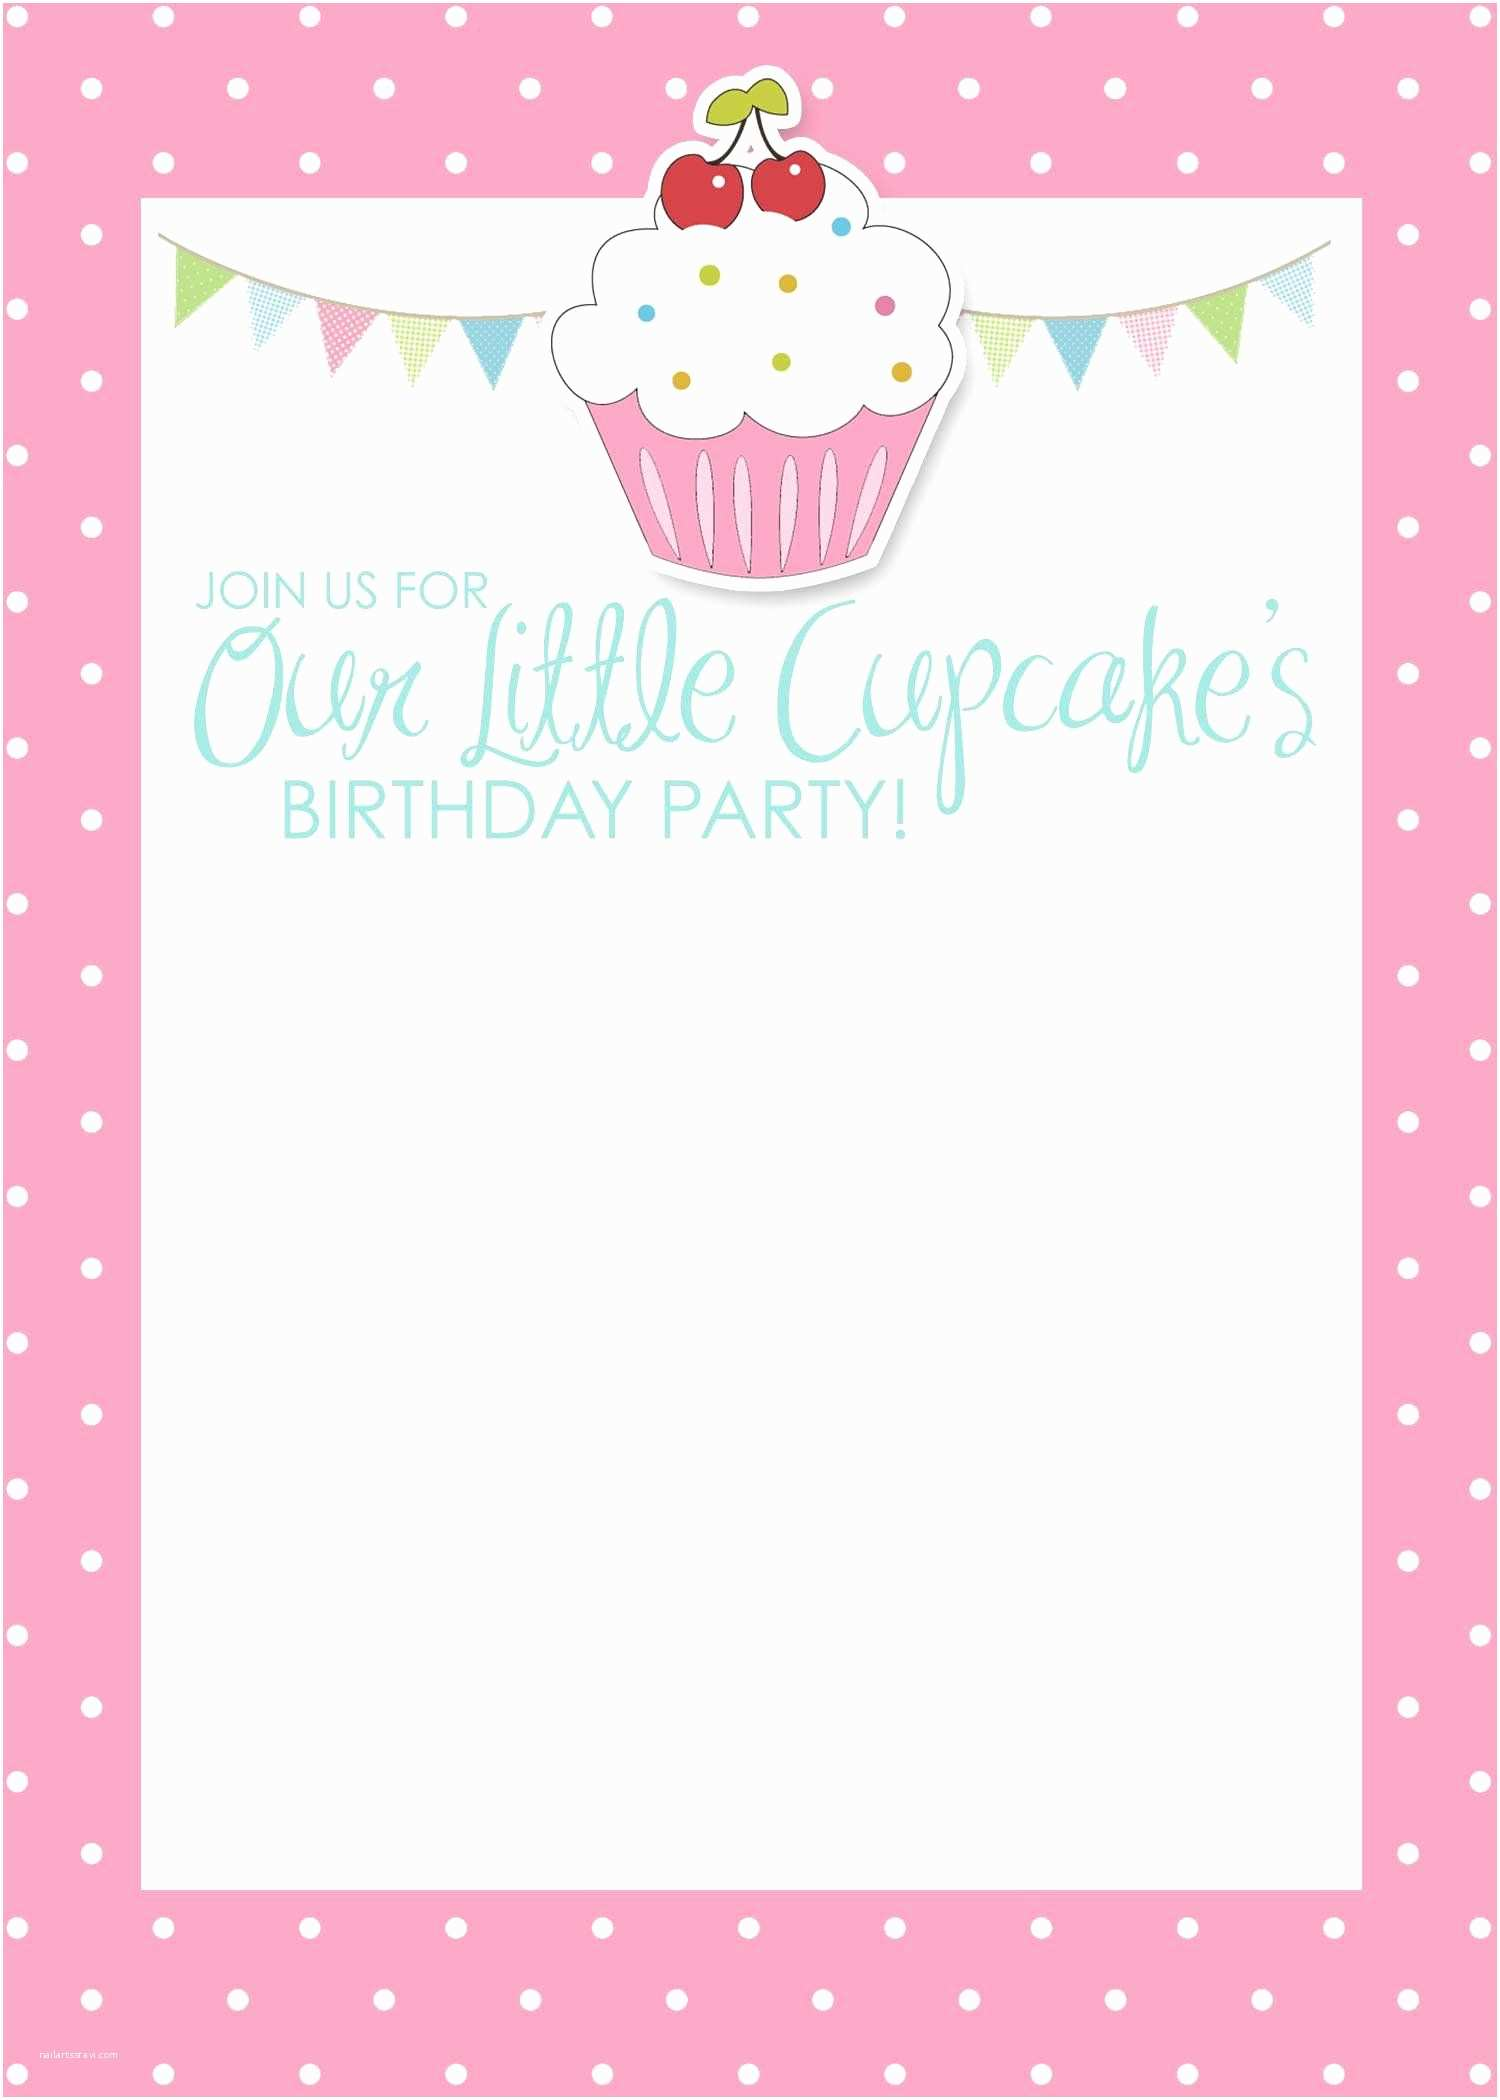 Free Printable Birthday Party Invitations Birthday Invitation Card Template Free